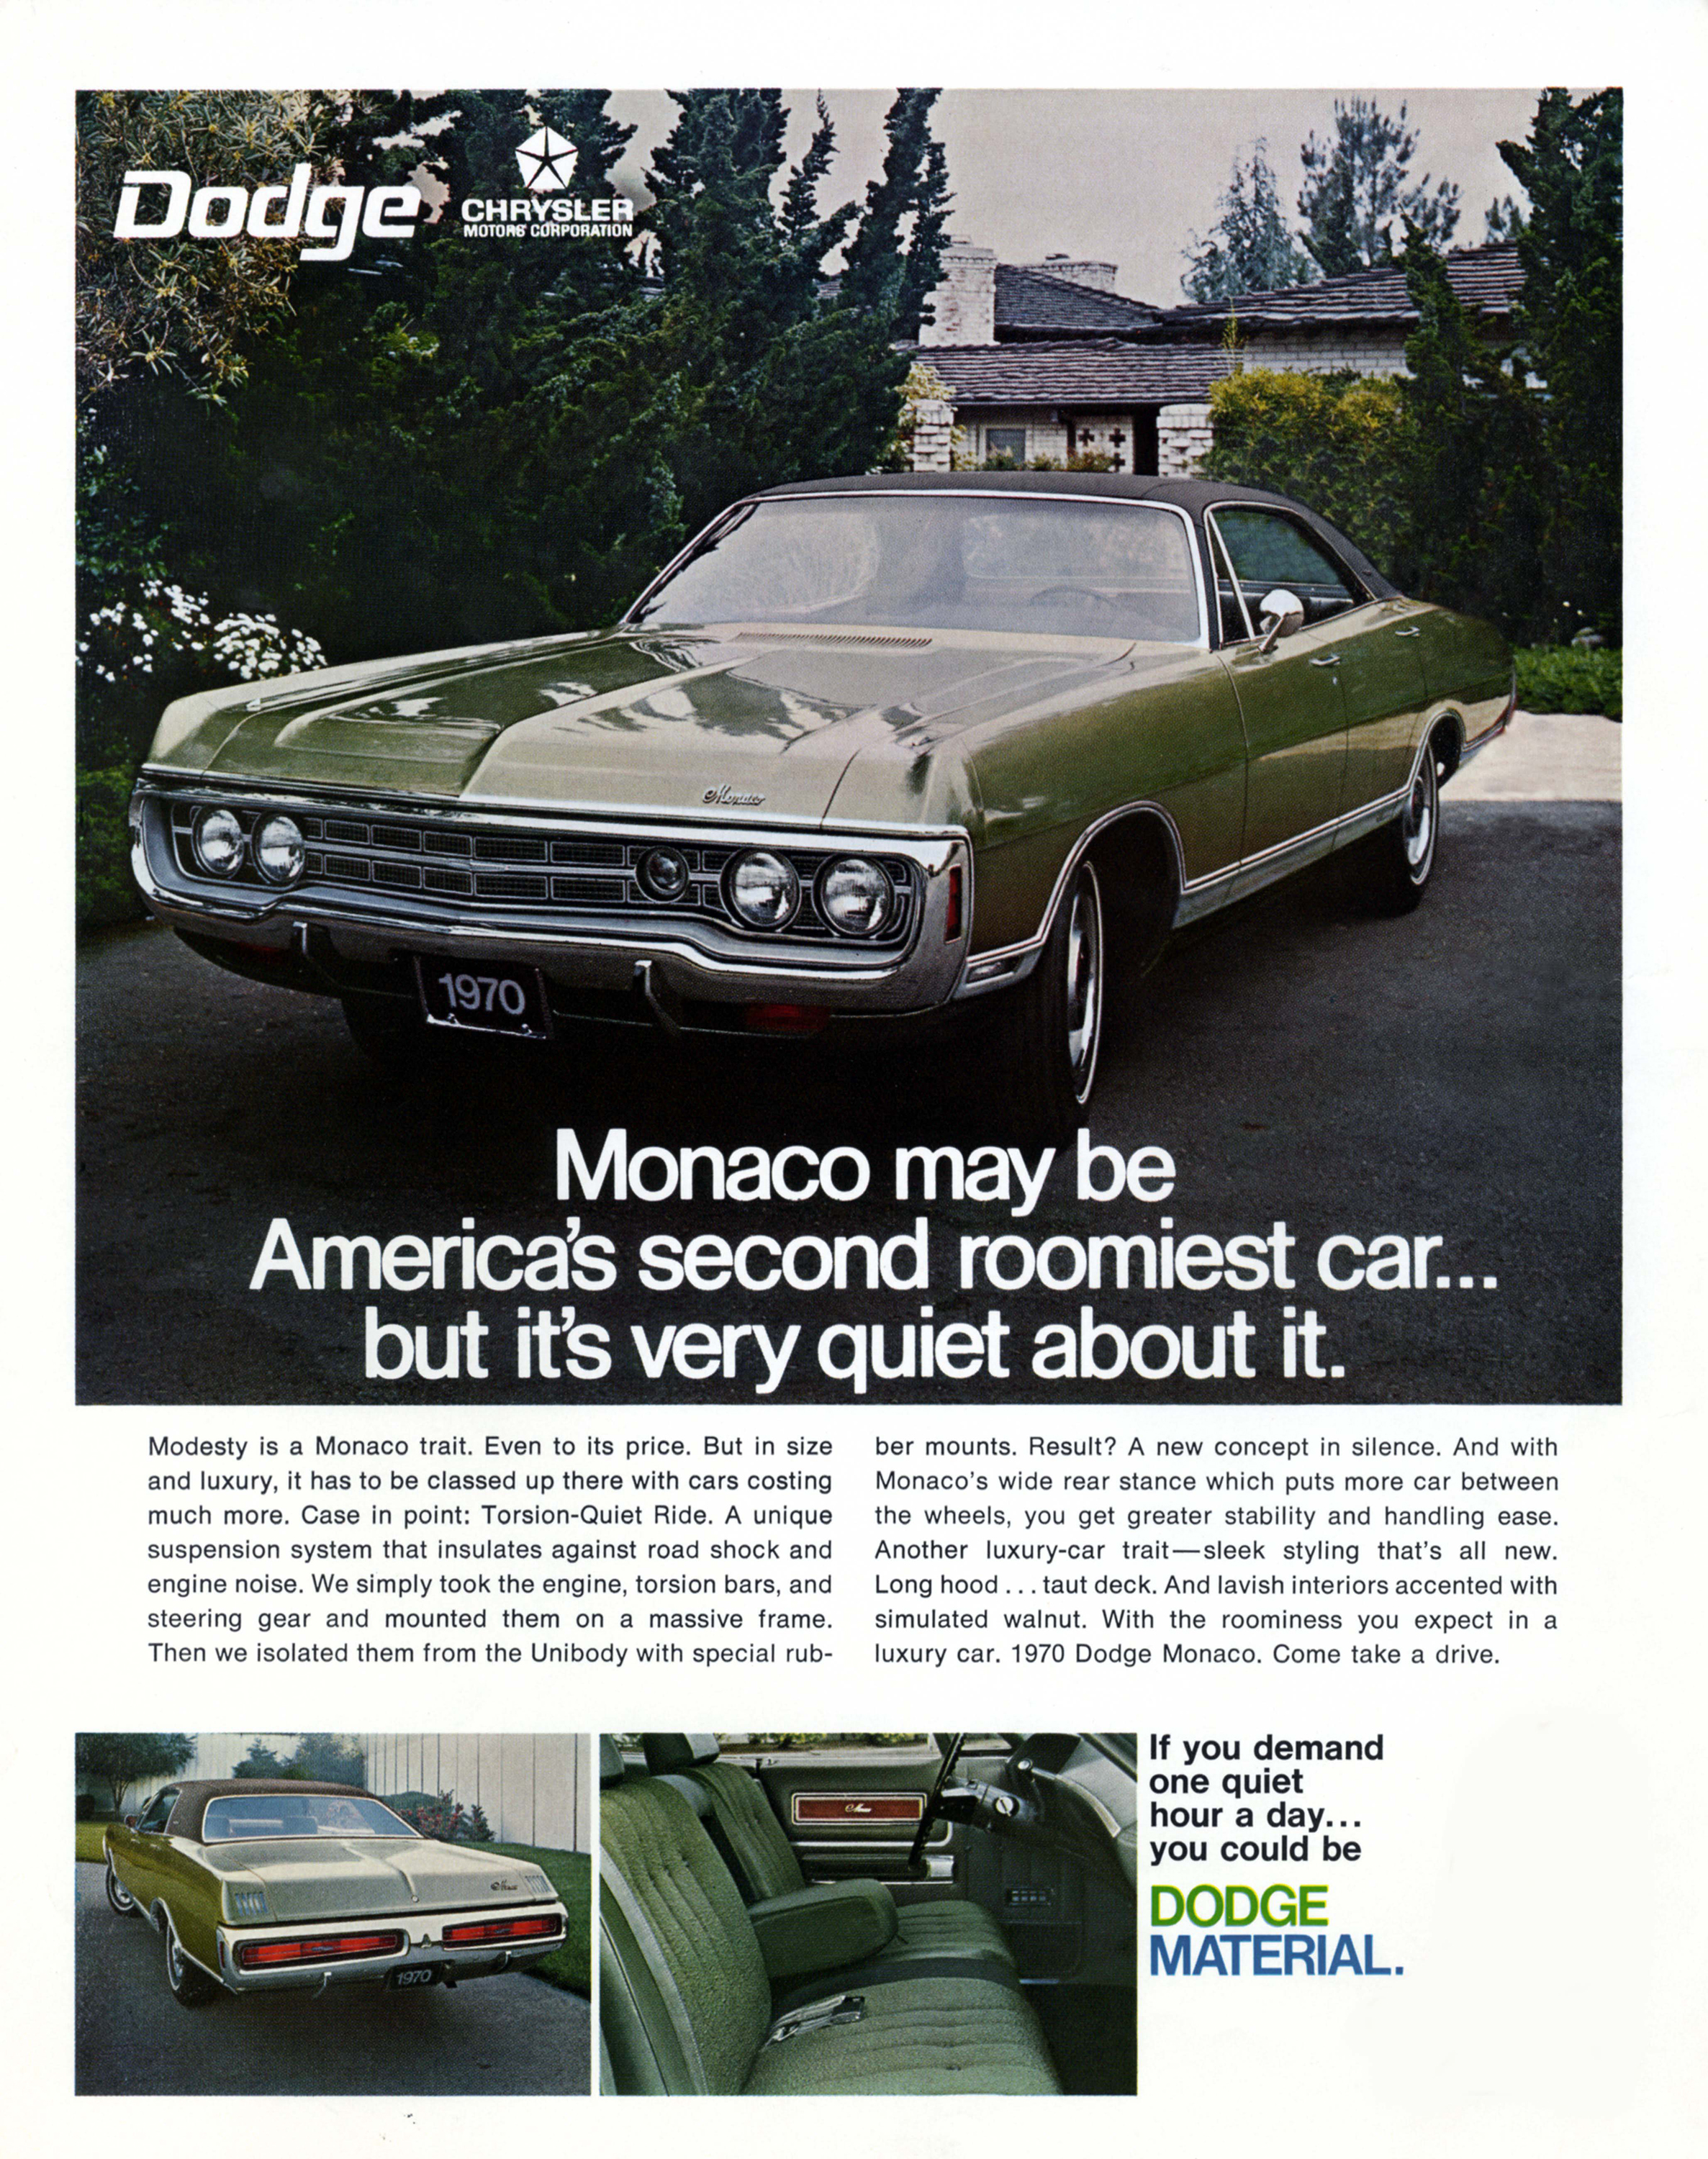 1970 Dodge Monaco advertisement